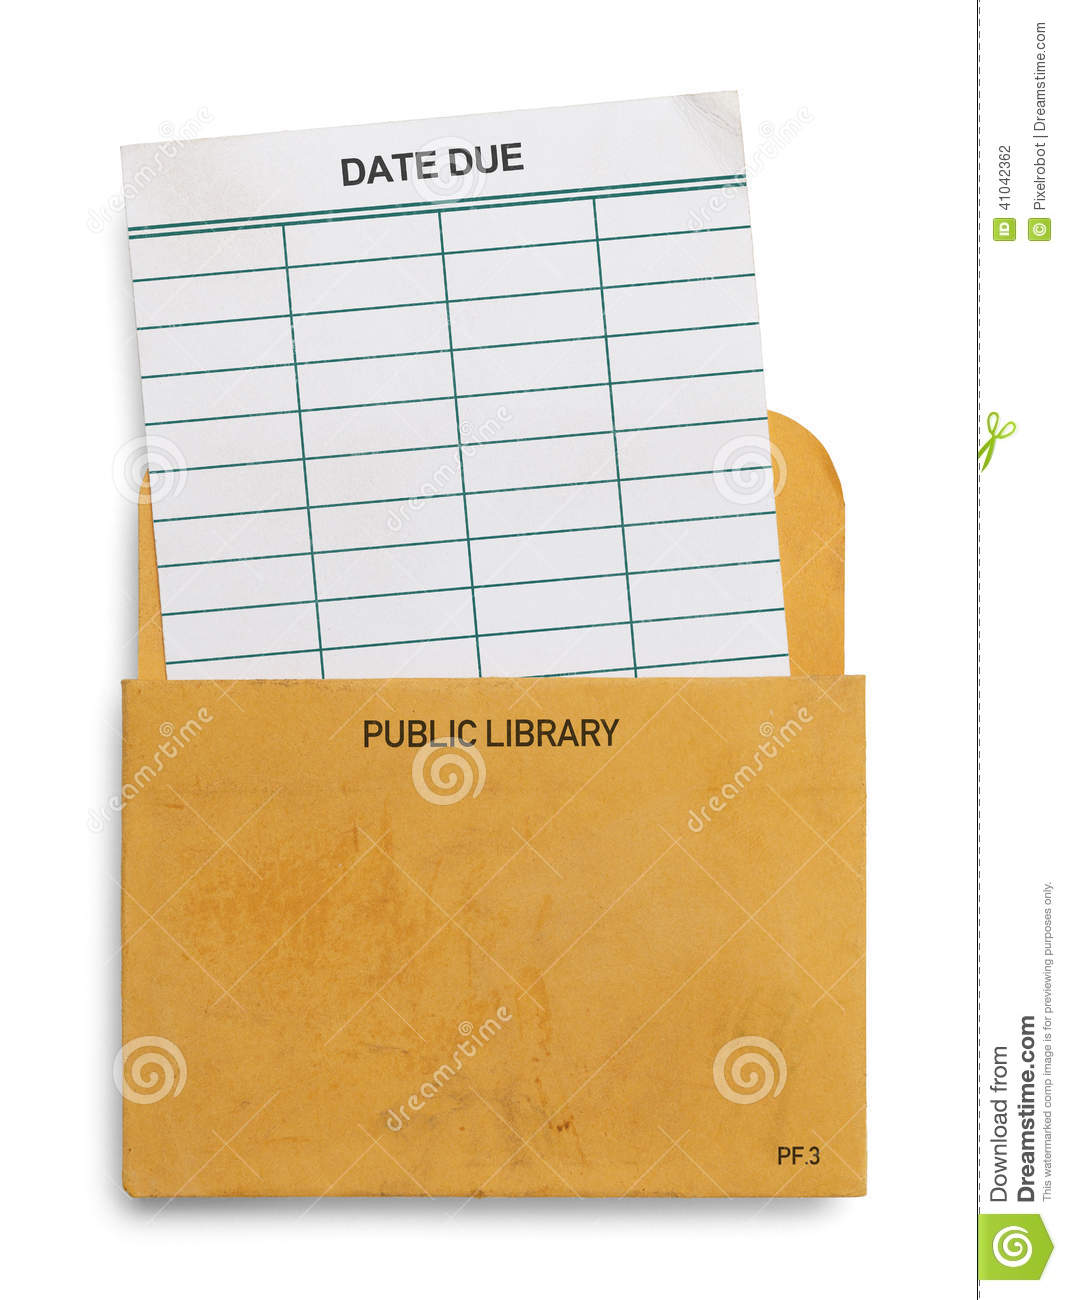 File Check Out Card library due card stock photo. image of fashioned, file